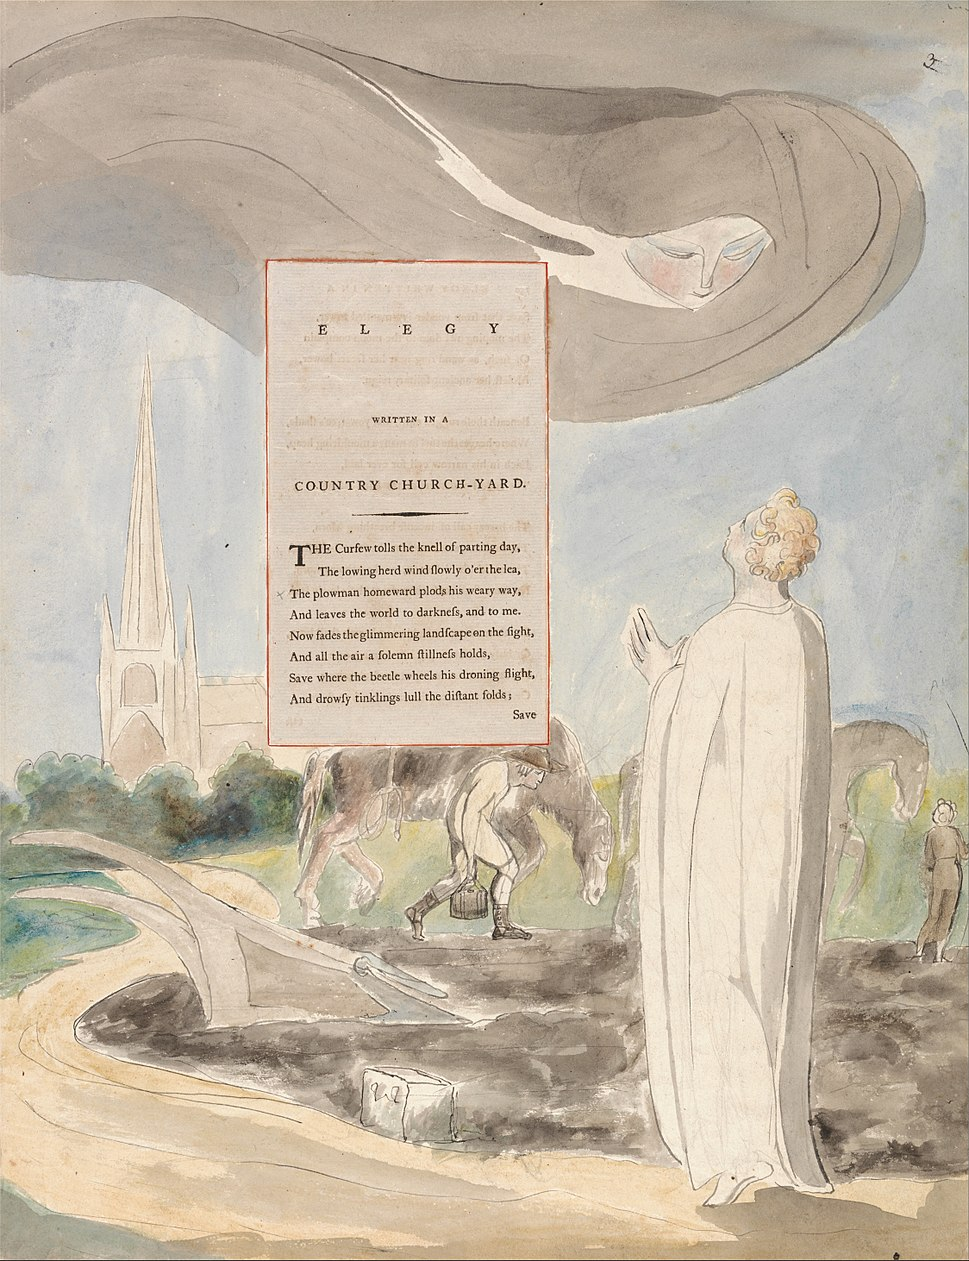 """William Blake - The Poems of Thomas Gray, Design 107, """"Elegy Written in a Country Church-Yard."""" - Google Art Project"""